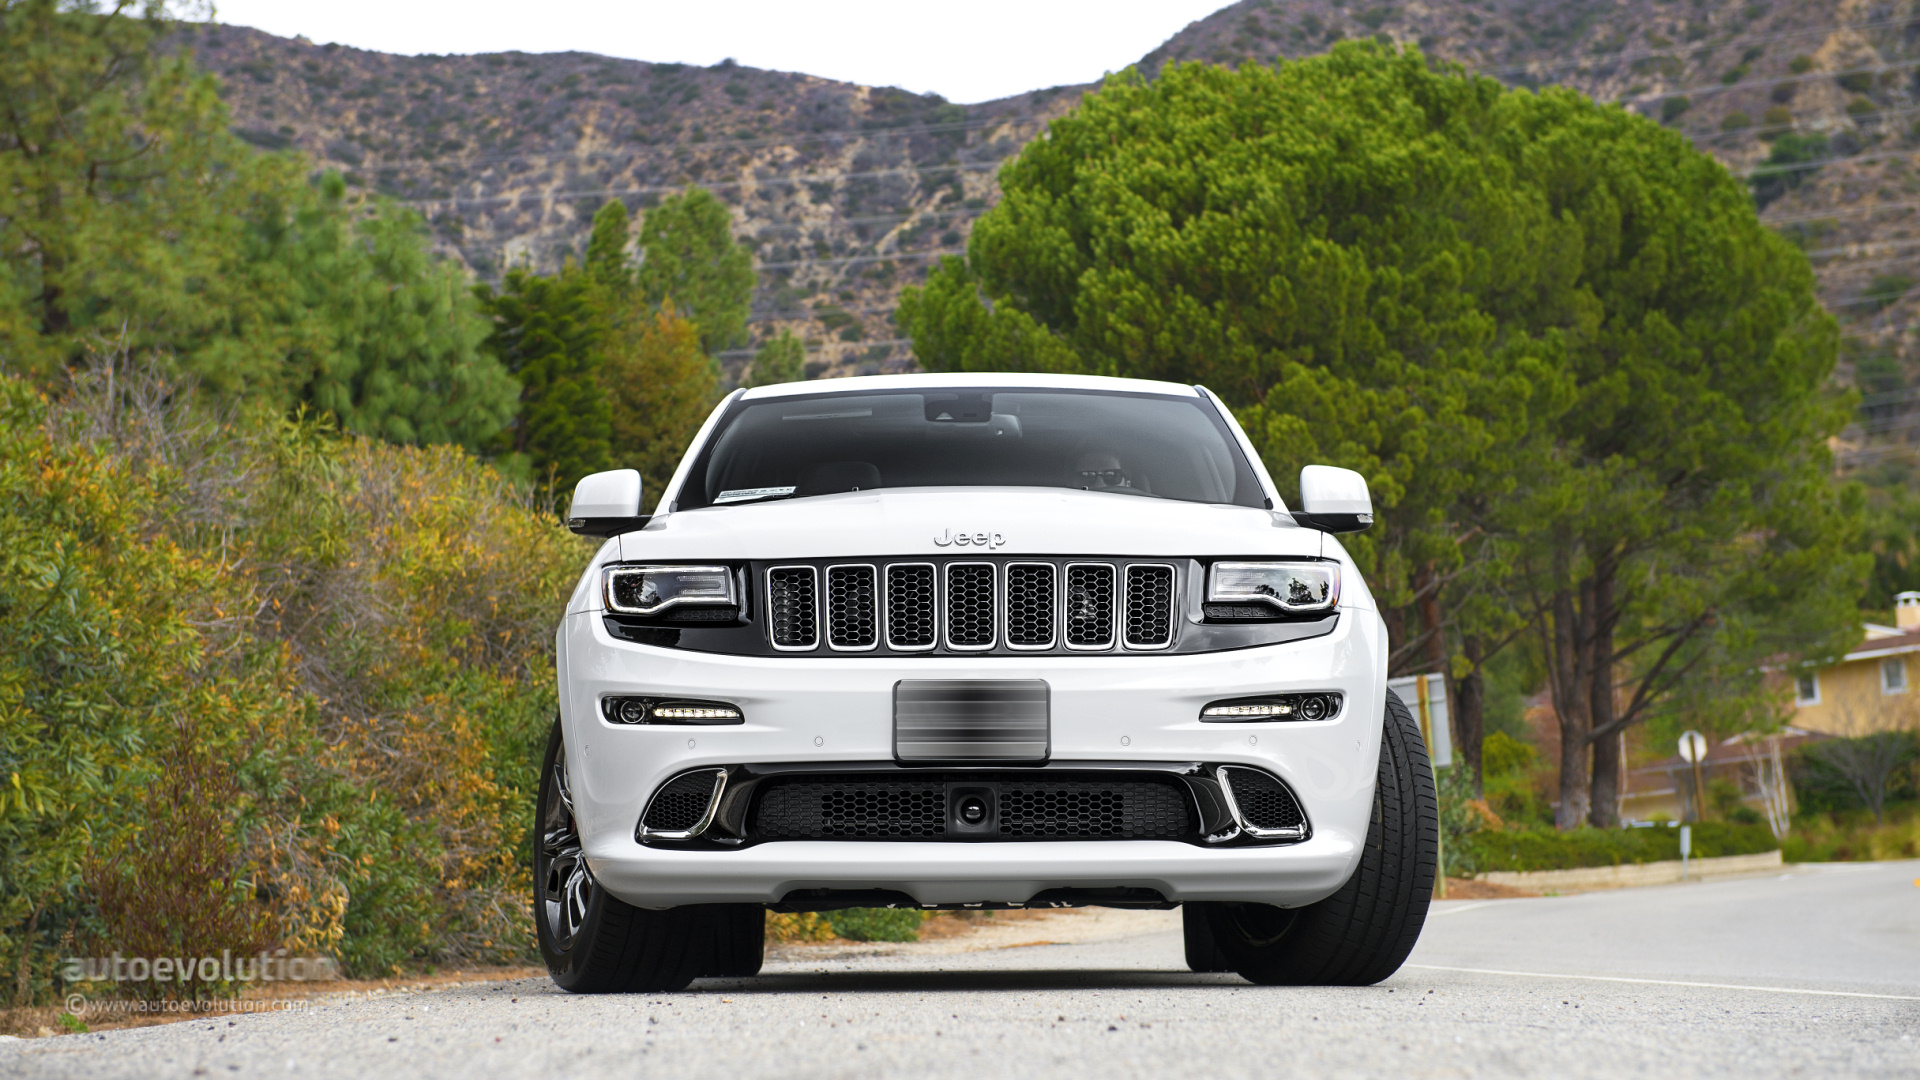 Hellcat-Powered Jeep Grand Cherokee Trackhawk Confirmed For 2017 Launch